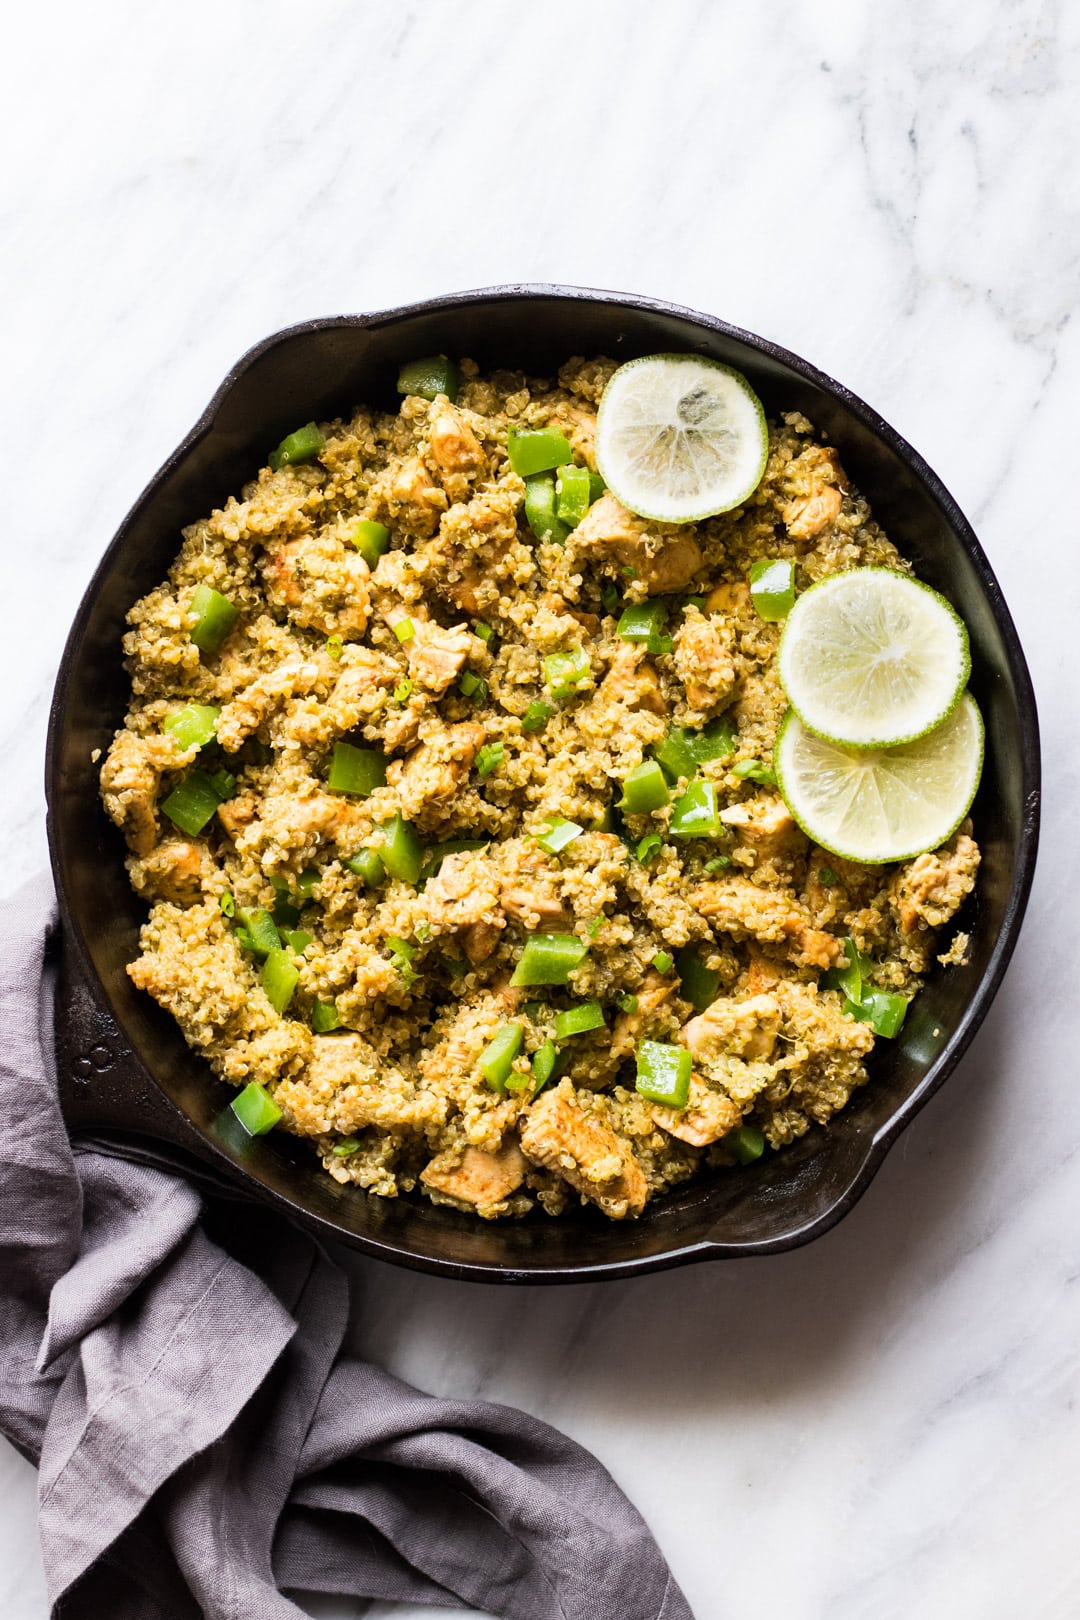 Low FODMAP cilantro lime quinoa with chicken in a cast-iron skillet on a marble slab with a blue-gray cloth napkin wrapped around the skillet handle.